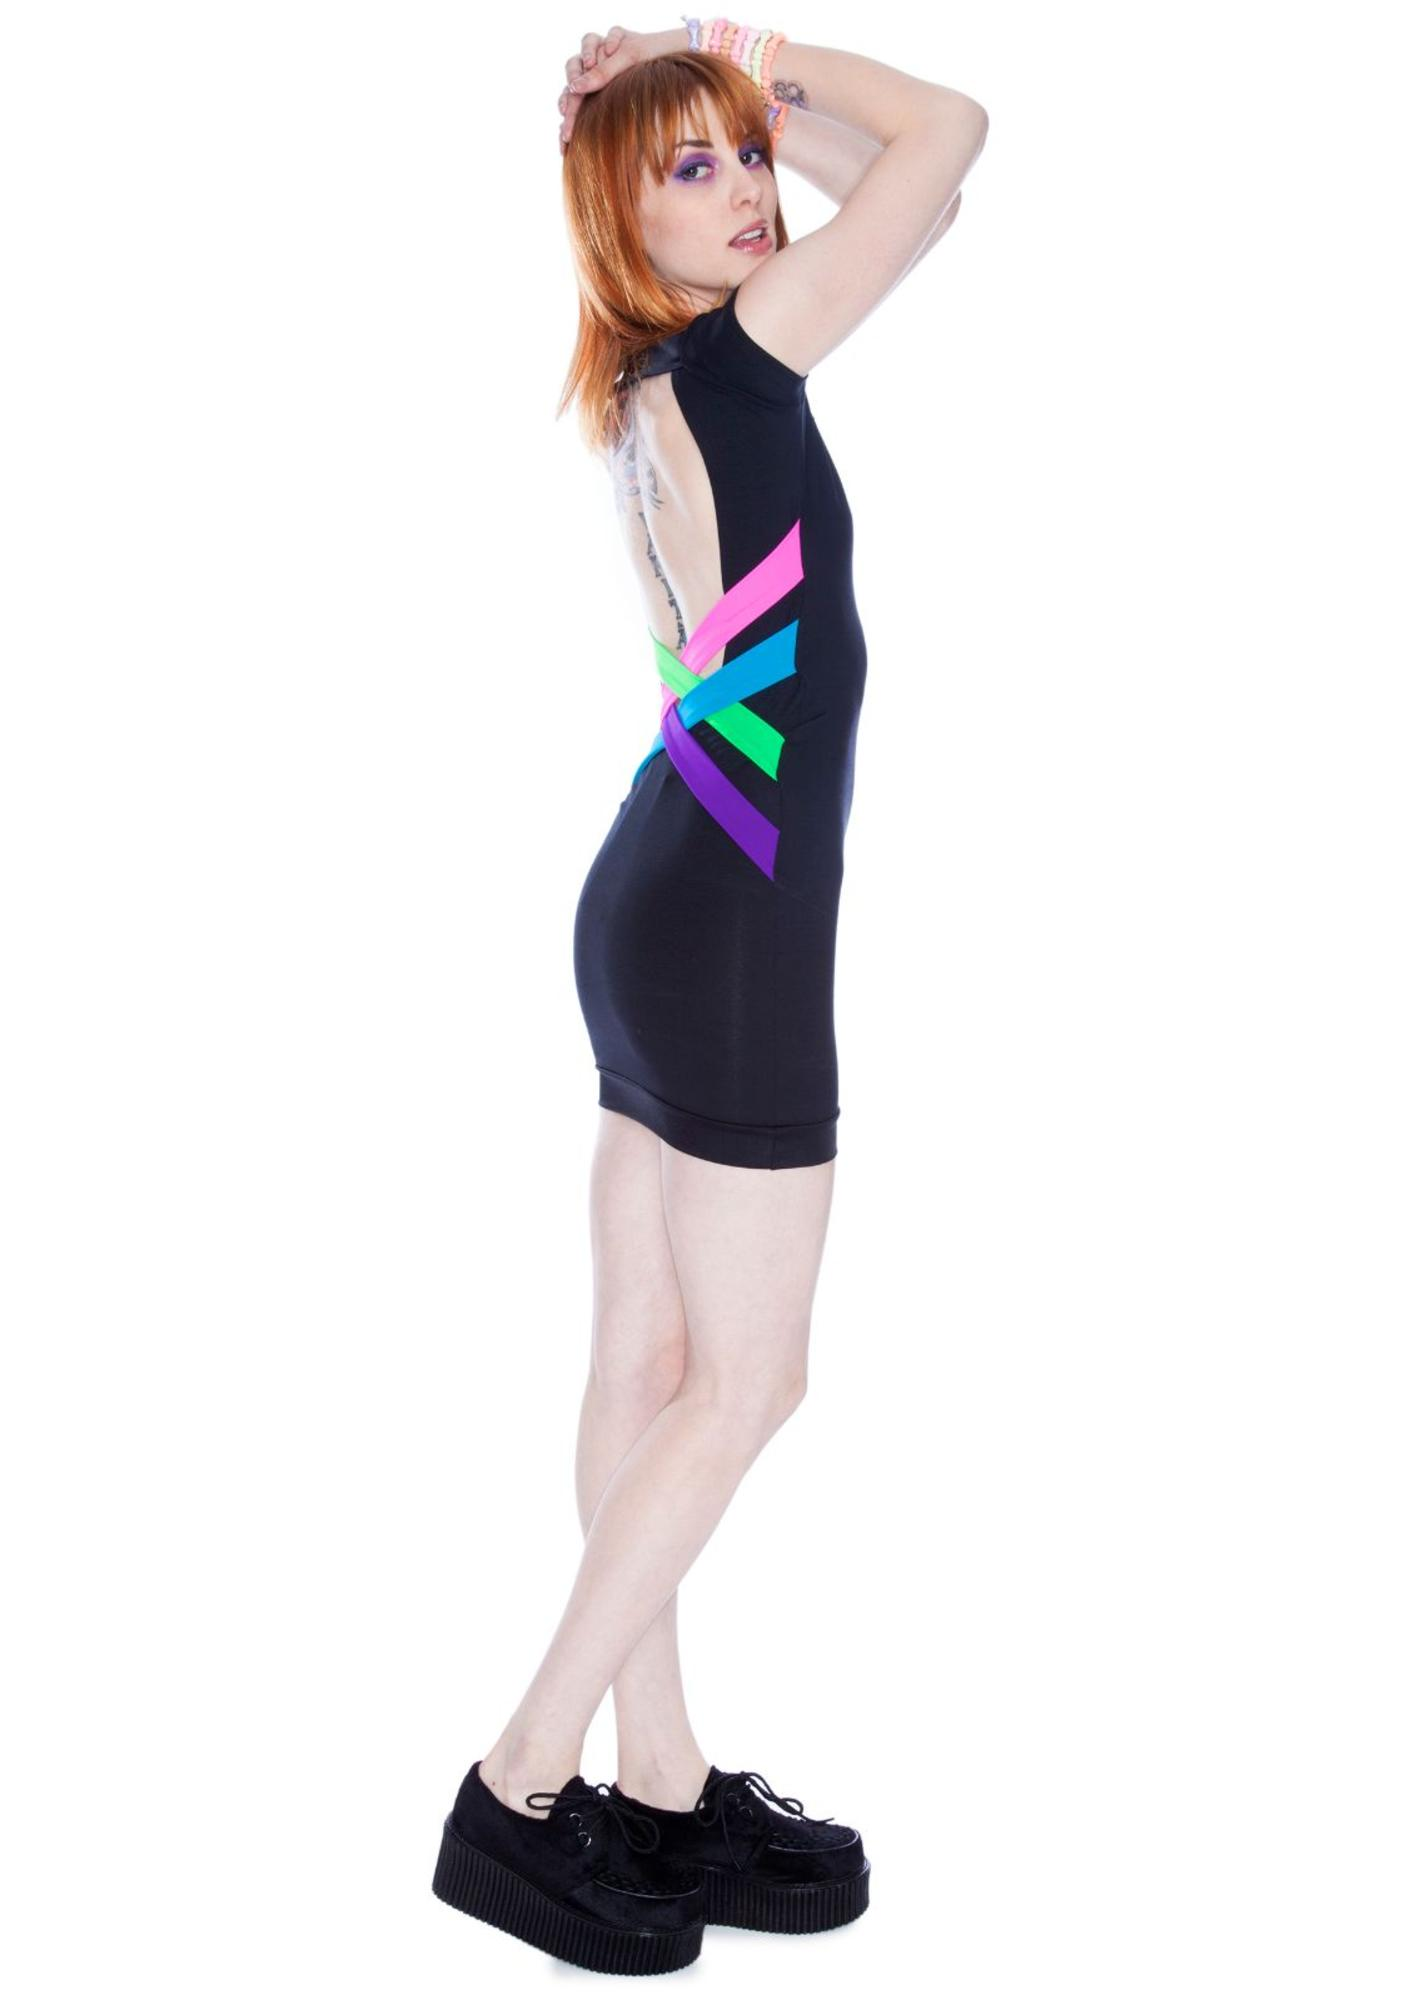 Criss Cross Black Neon Dress